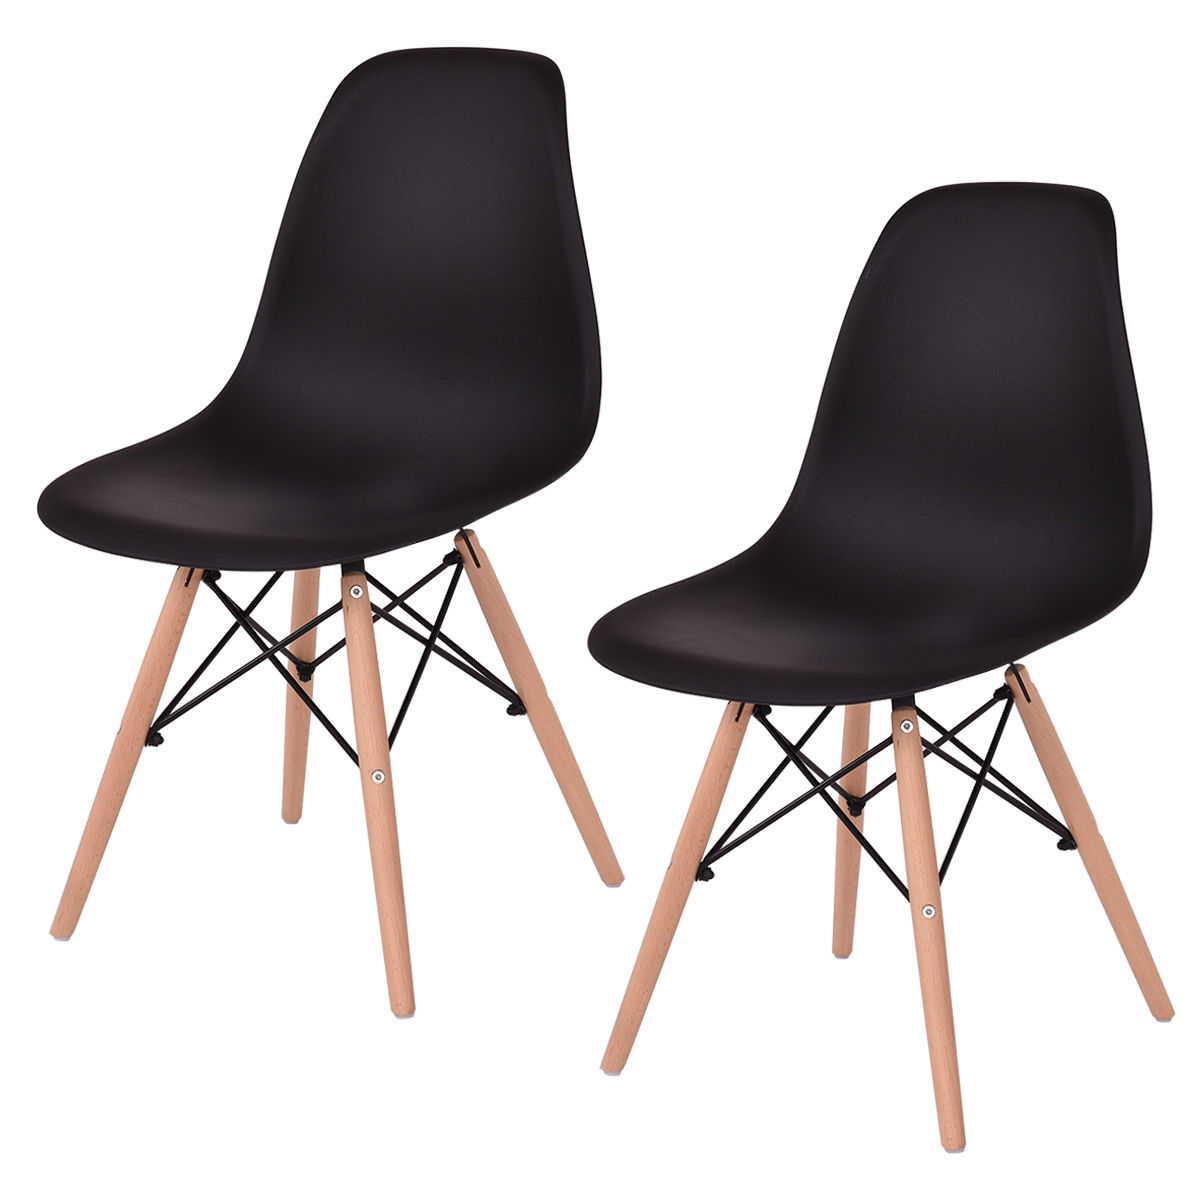 Giantex 2PCS Mid Century Modern Dining Side Chair Wood Leg Black Chairs Living Room Dining Room Furniture HW54094BK mid century presidential solid oak wood dining chair armchair upholstery seat dining room furniture modern arm chair for home